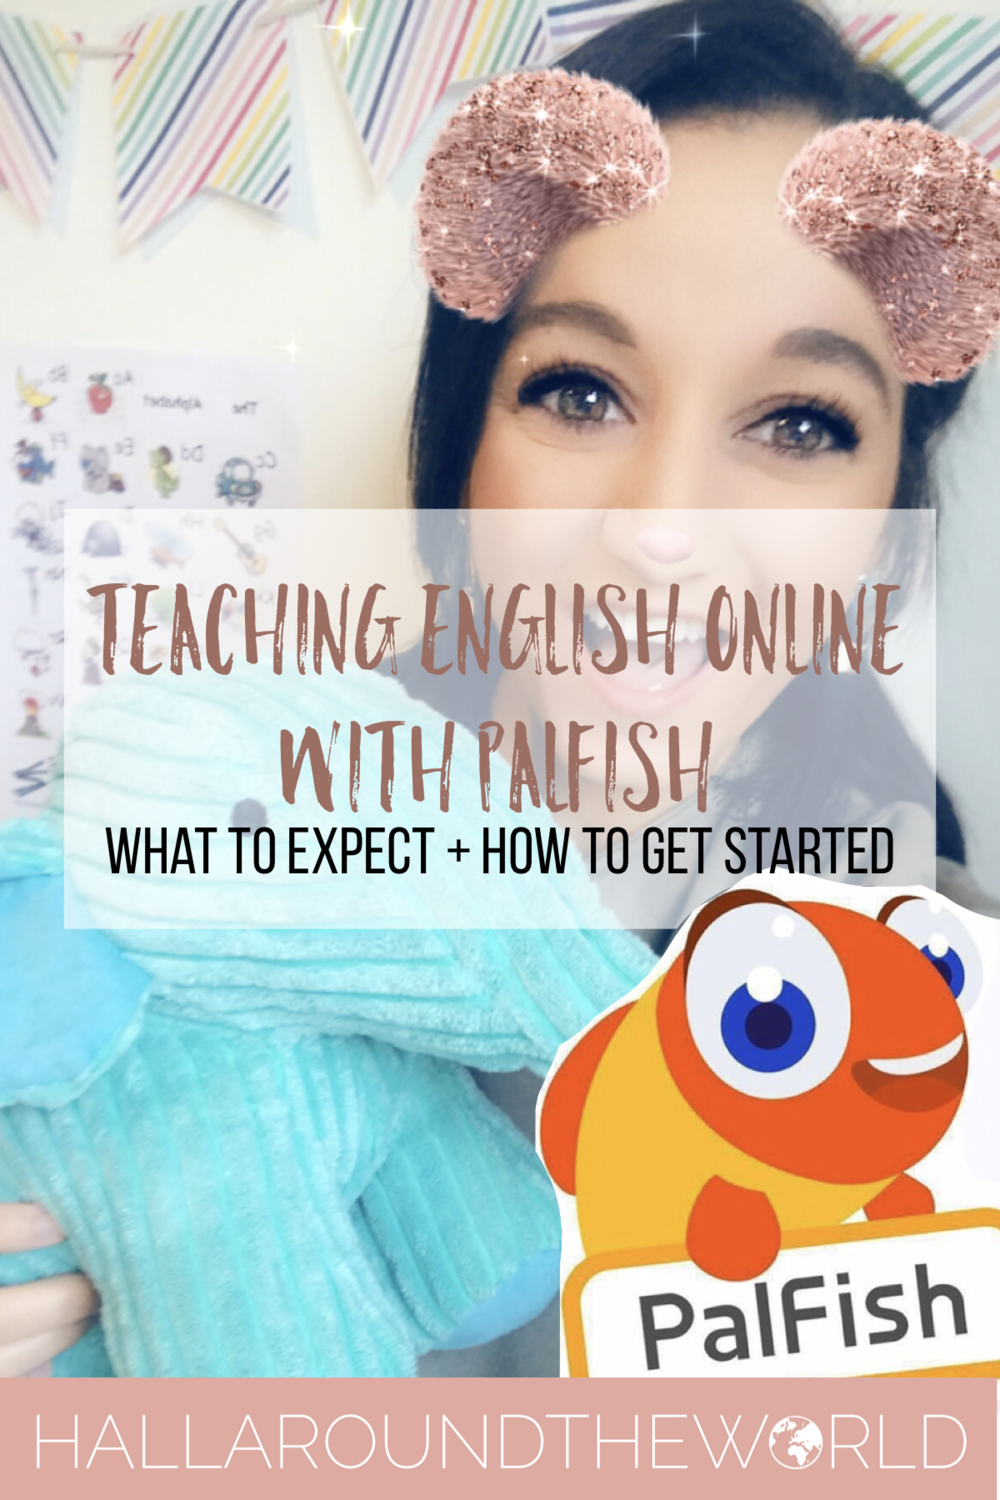 Teaching English Online with PalFish - What to Expect + How to Get Started | HallAroundtheWorld